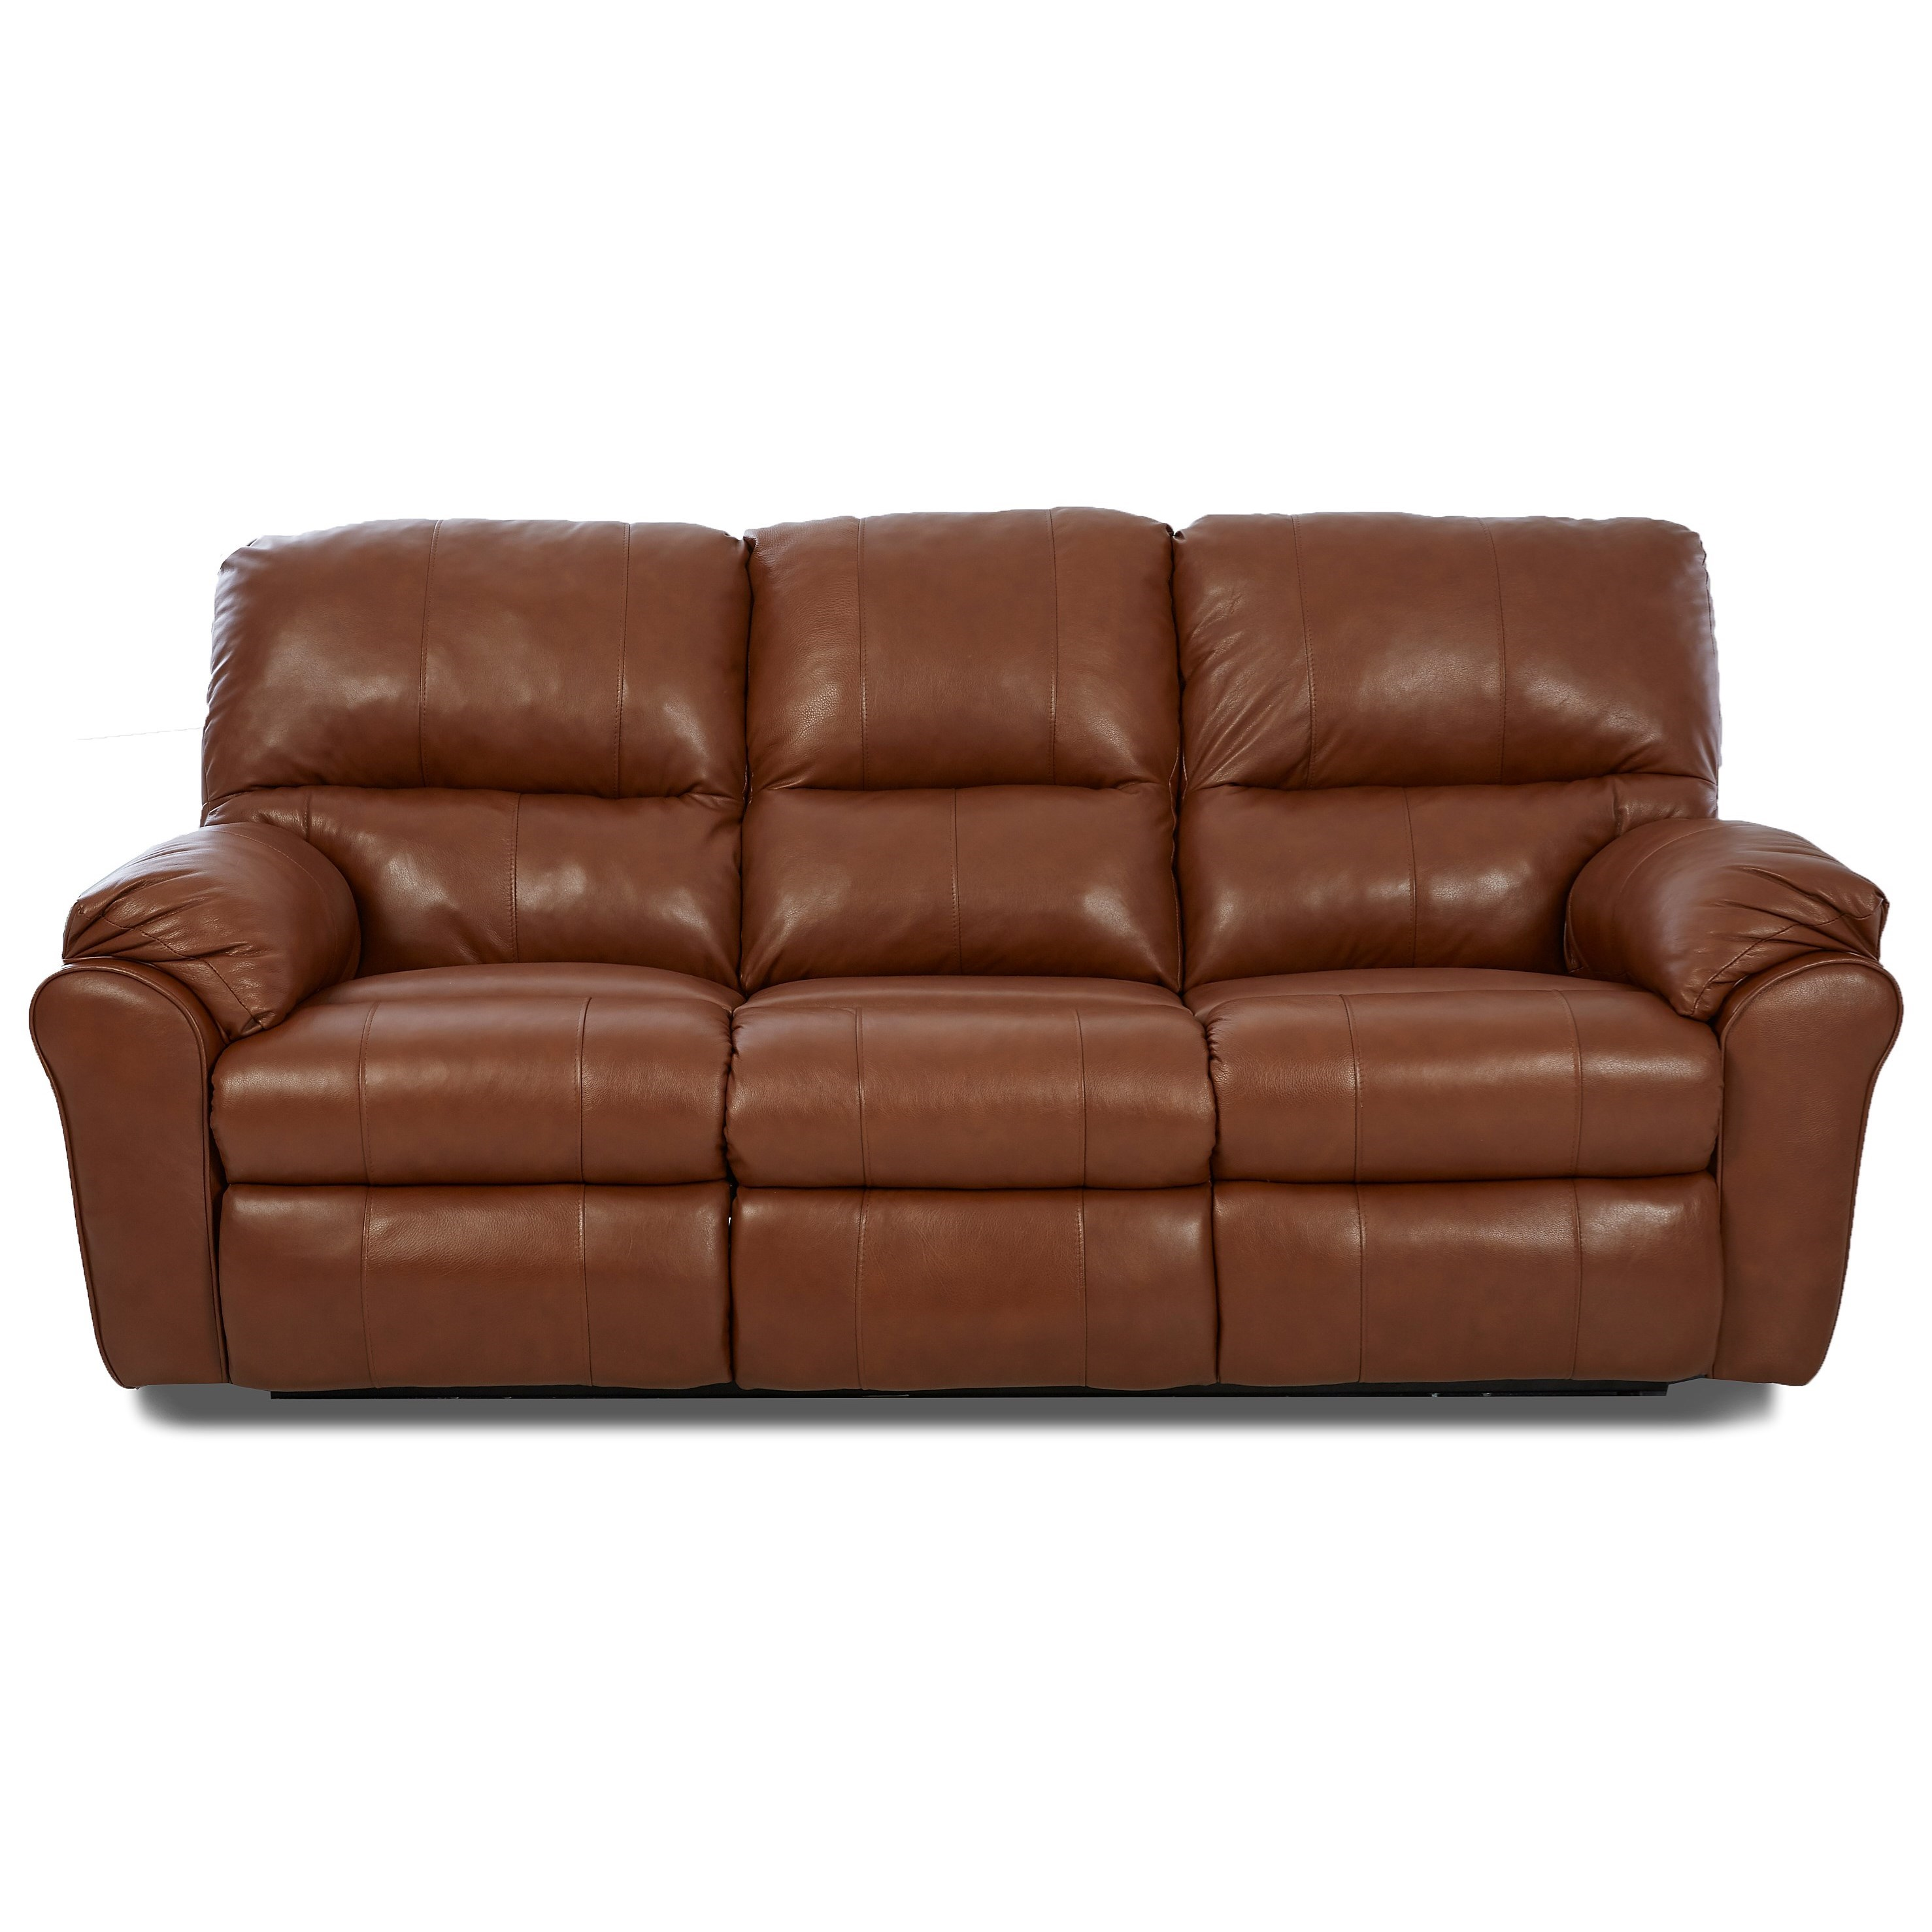 Casual Power Reclining Sofa with 2 Recliners